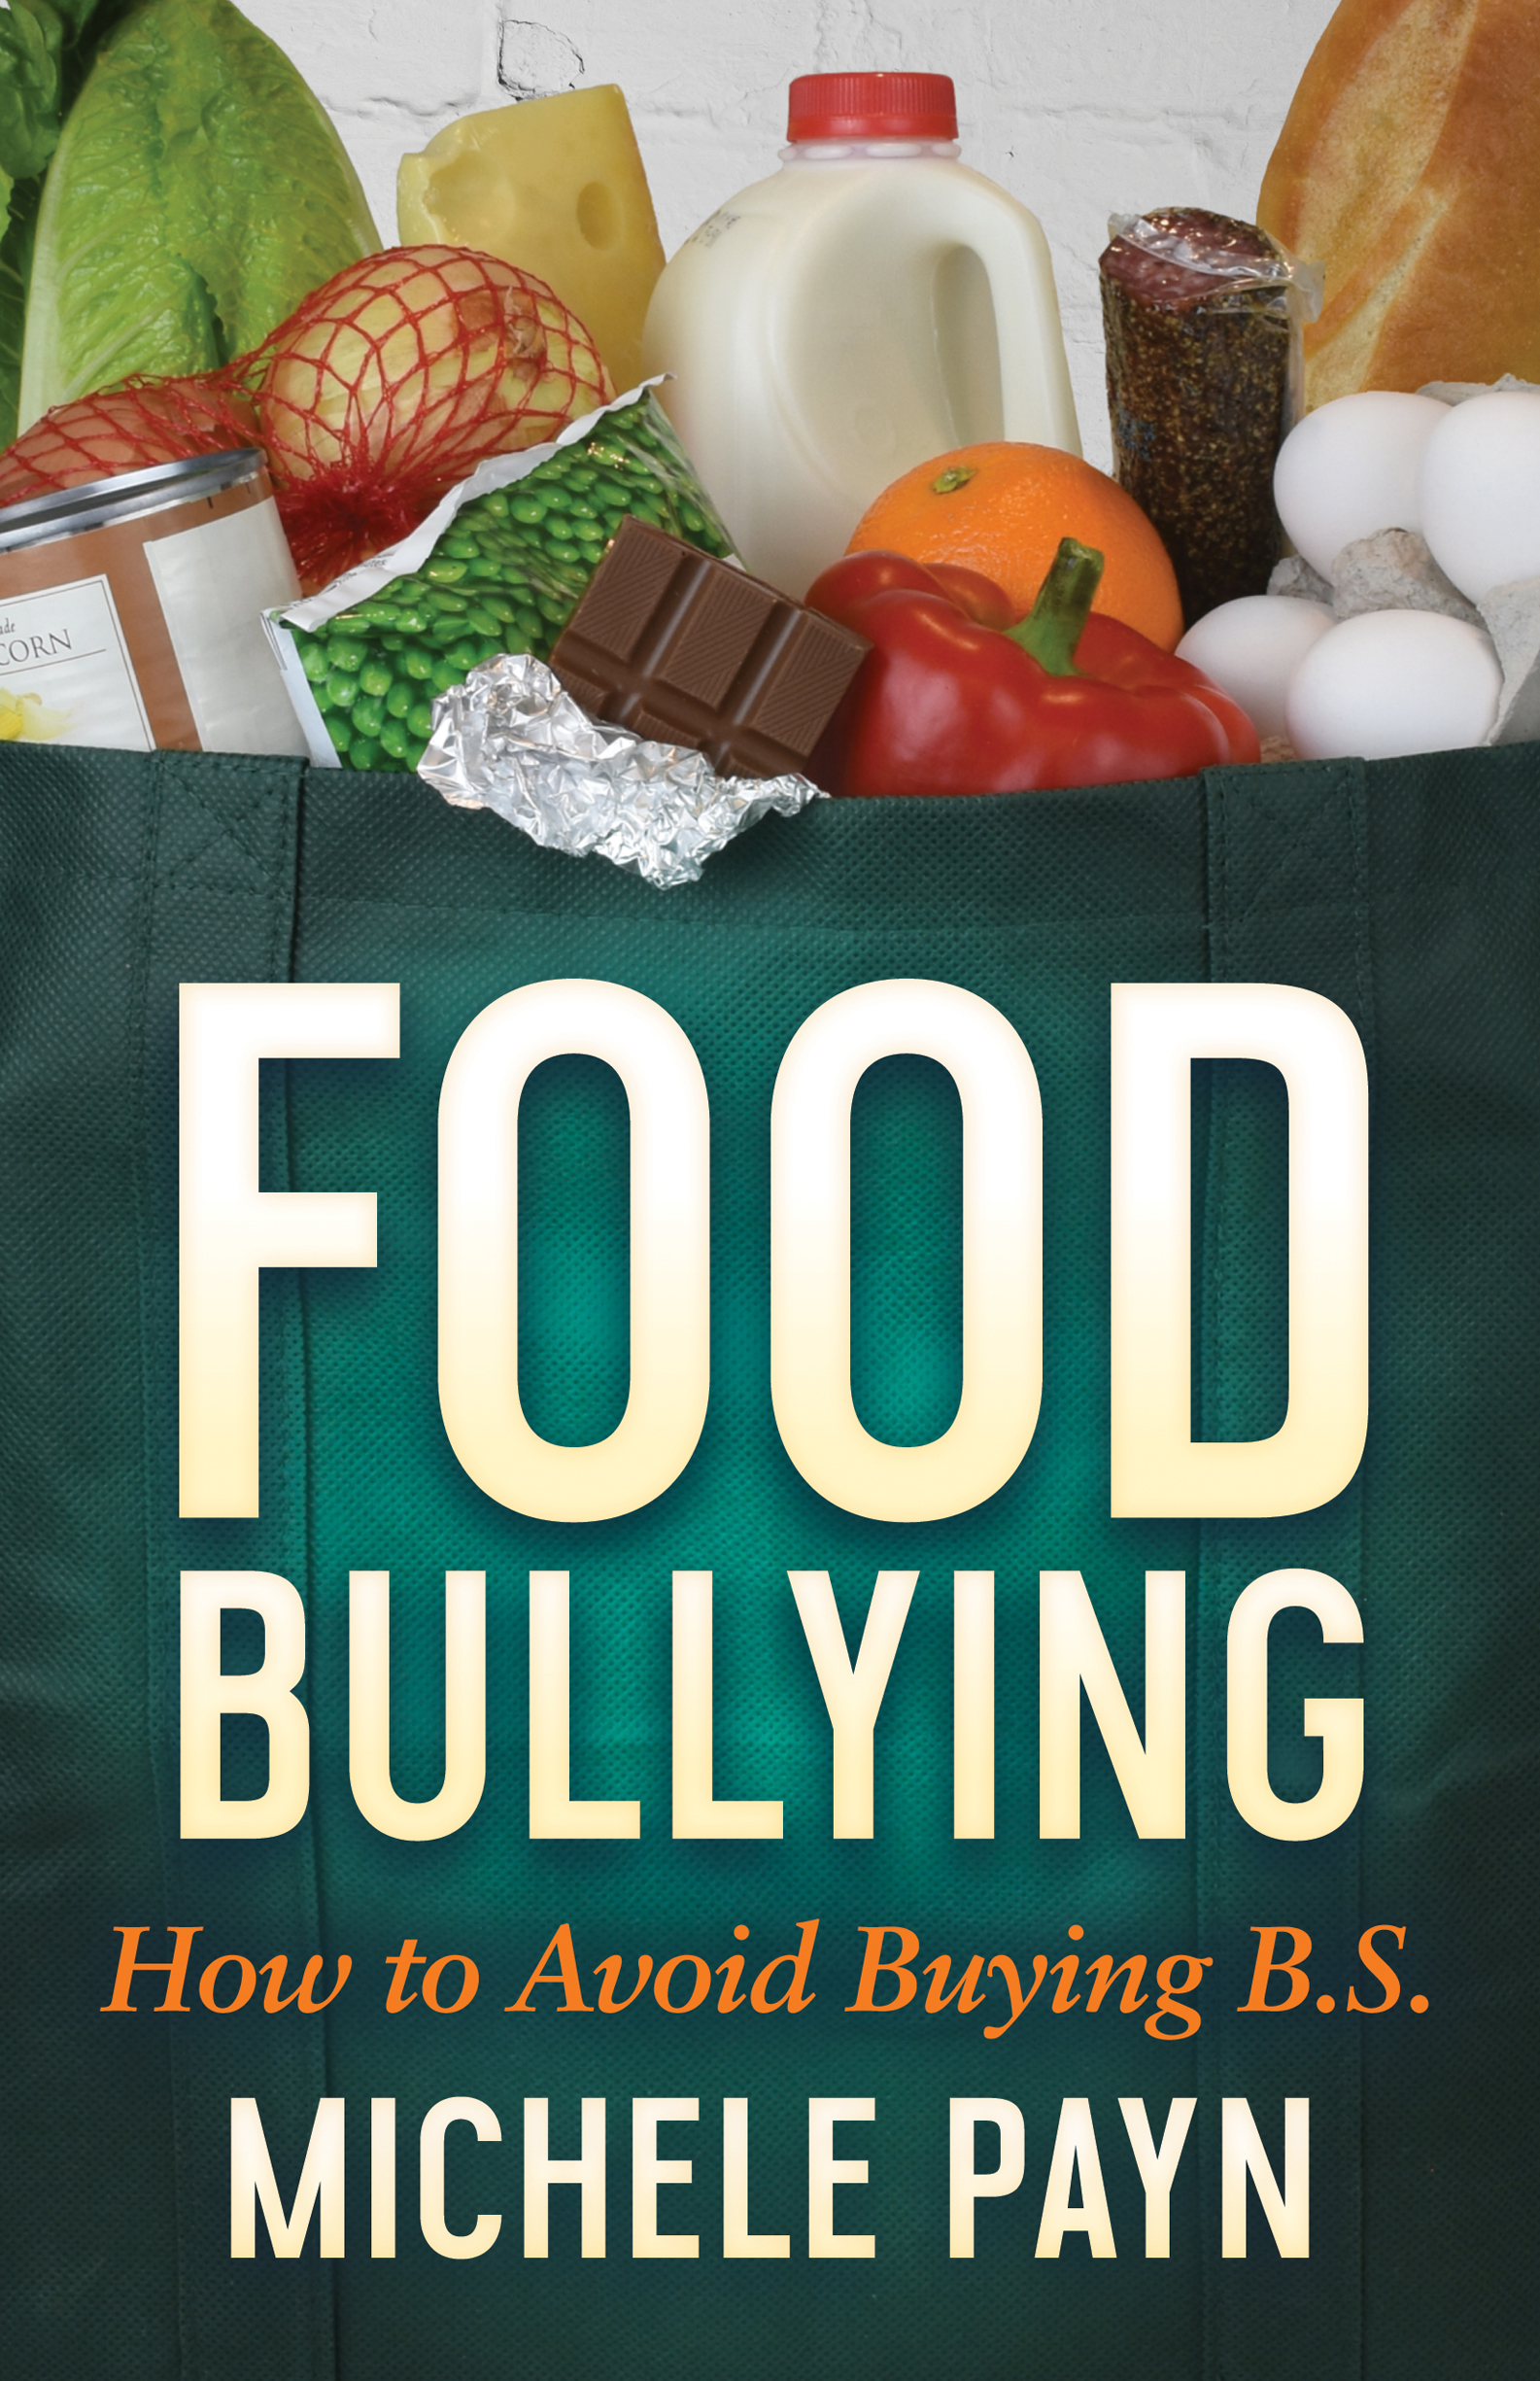 Book cover of Food Bullying How to Avoid Buying B.S.